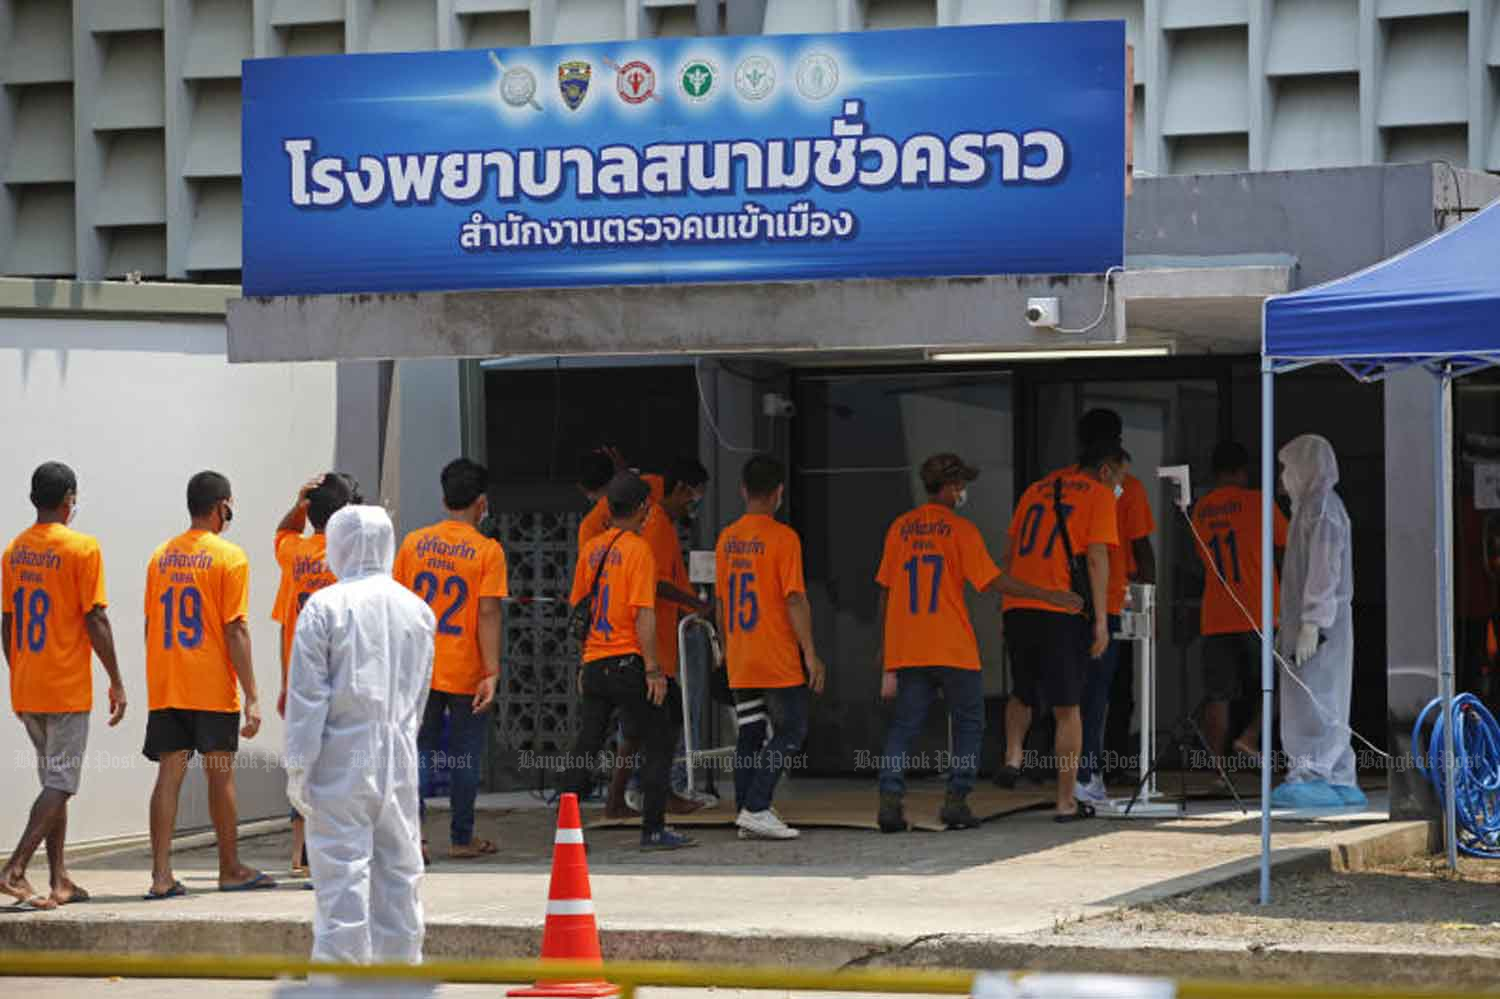 Health workers move 100 Covid-19 infected undocumented migrants from the immigration detention centre in Bang Khen district to the field hospital at the police-owned Boonyachinda Stadium in Laksi district on Wednesday, when the country logged 97 new cases. (Photo: Varuth Hirunyatheb)